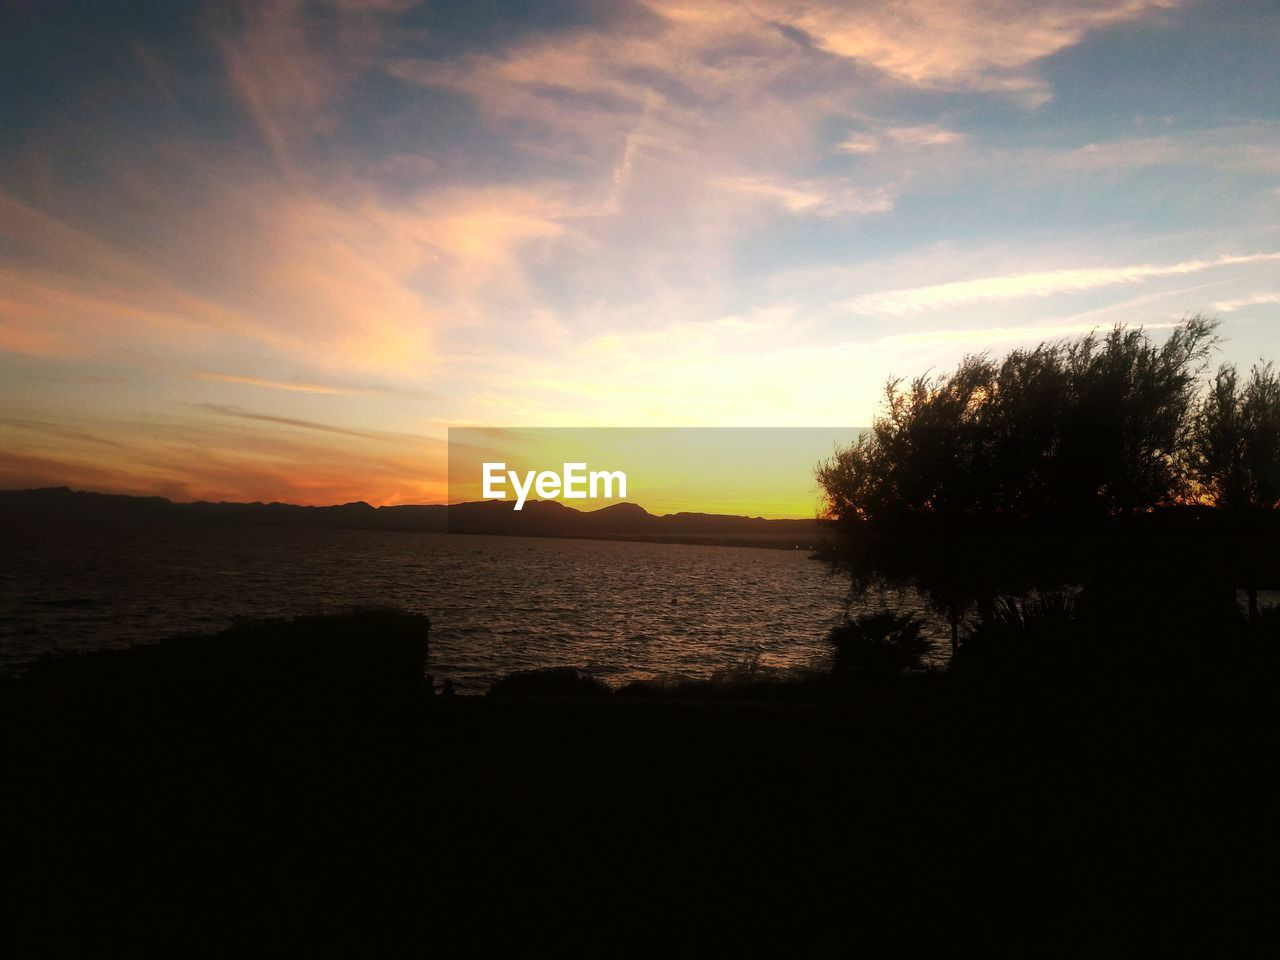 sunset, silhouette, nature, sky, landscape, water, no people, scenics, beauty in nature, outdoors